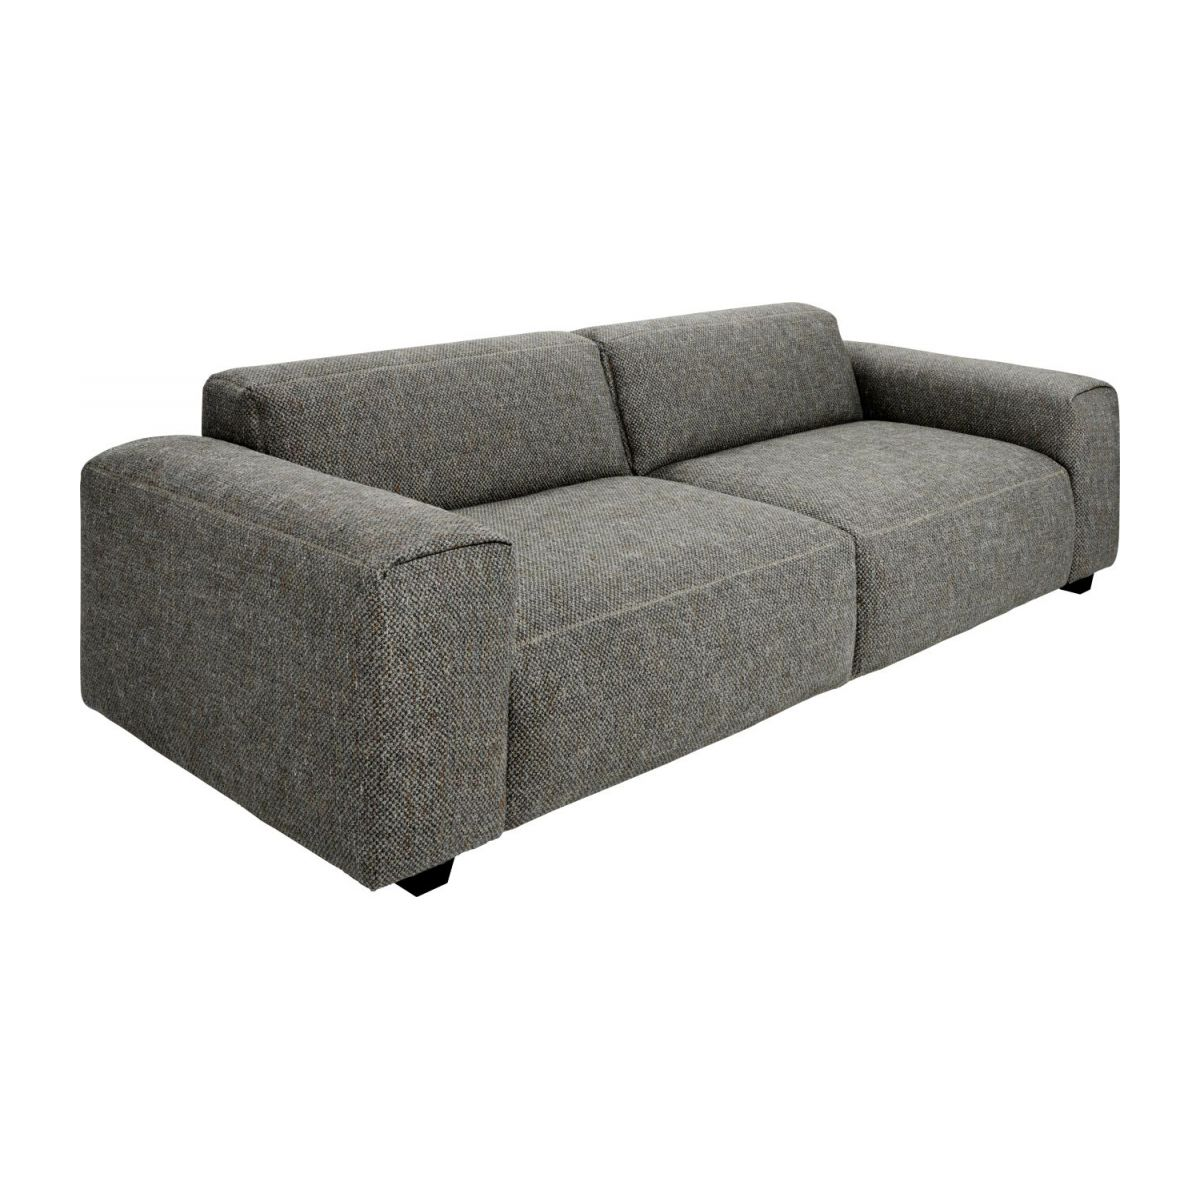 4-seter sofa, sort n°1